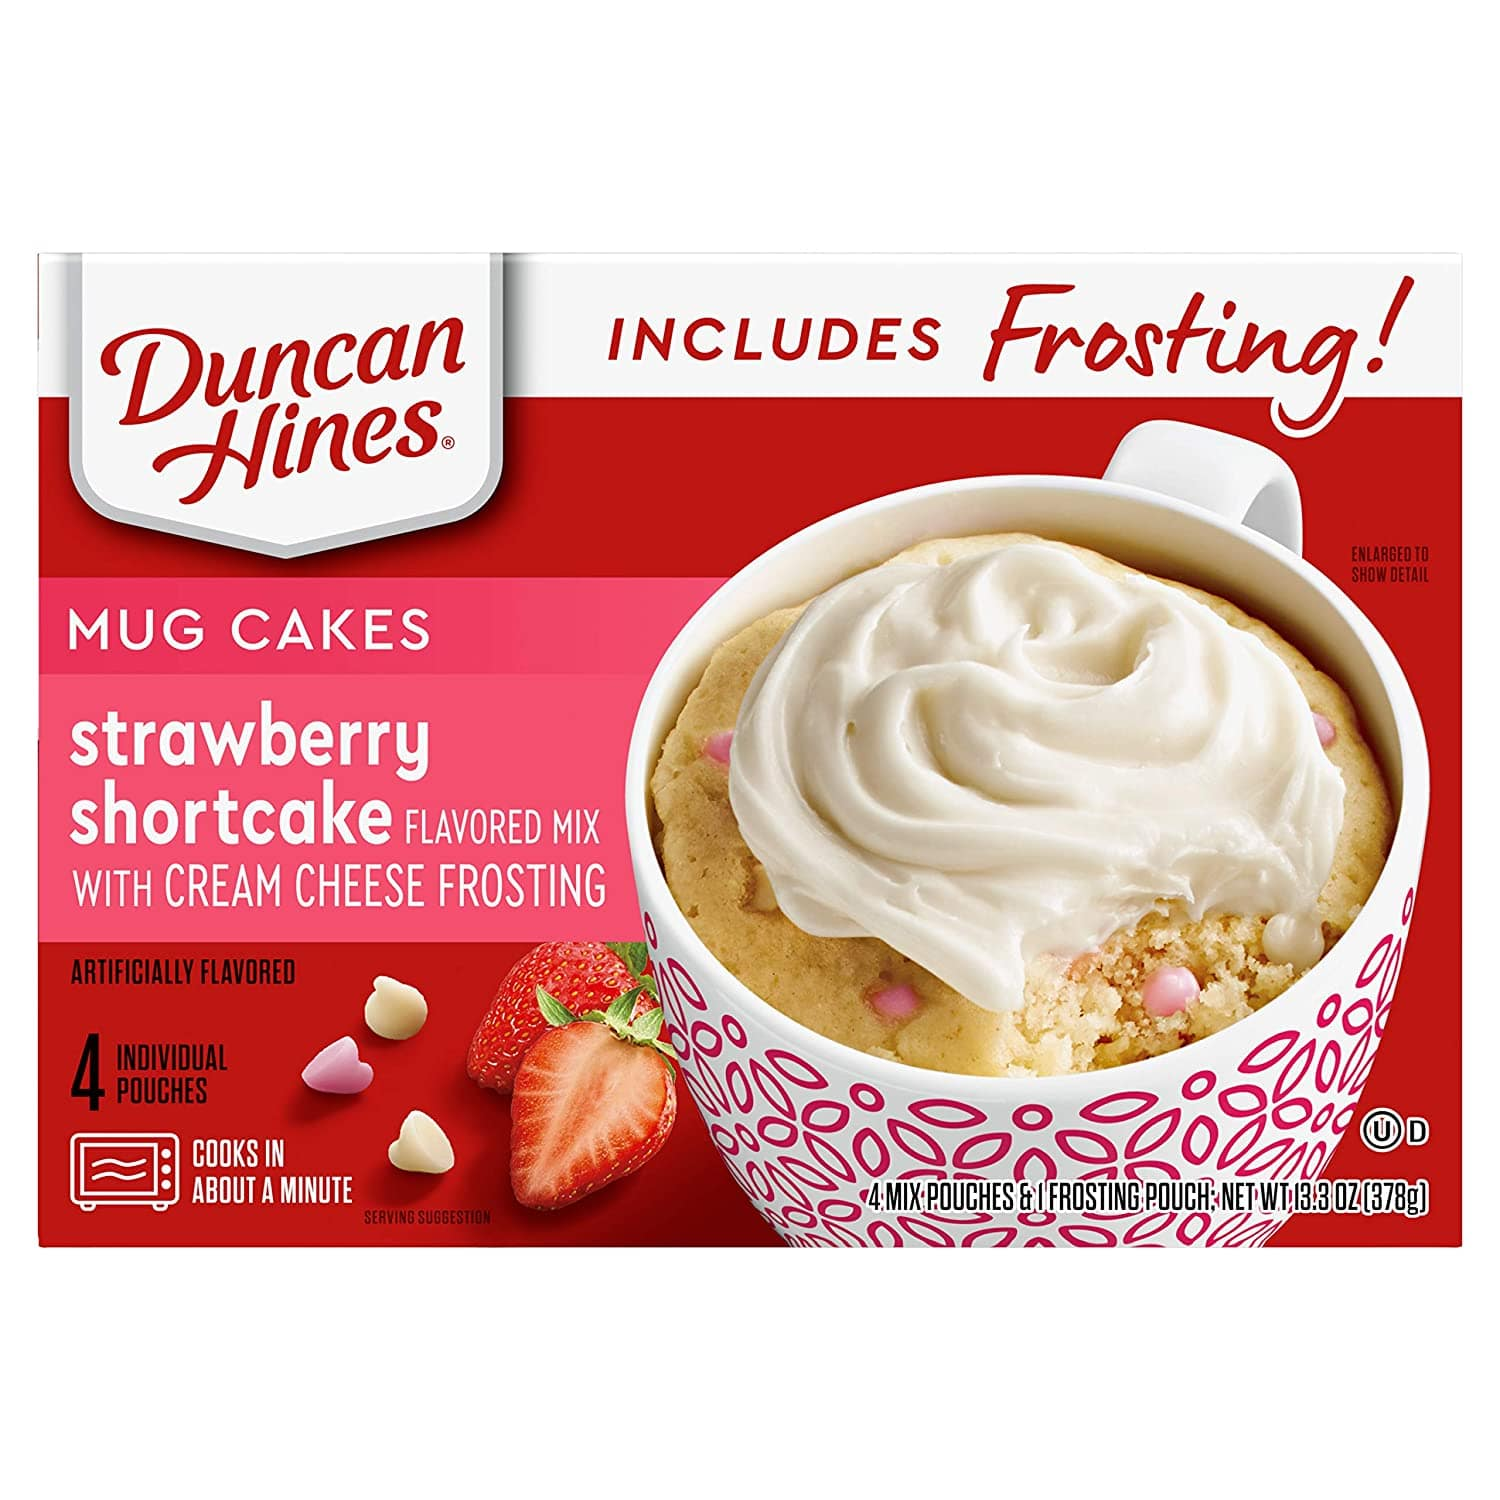 Duncan Hines Mug Cake with Frosting (Lemon Cake or Strawberry Shortcake) for $1.88 A/C and S&S